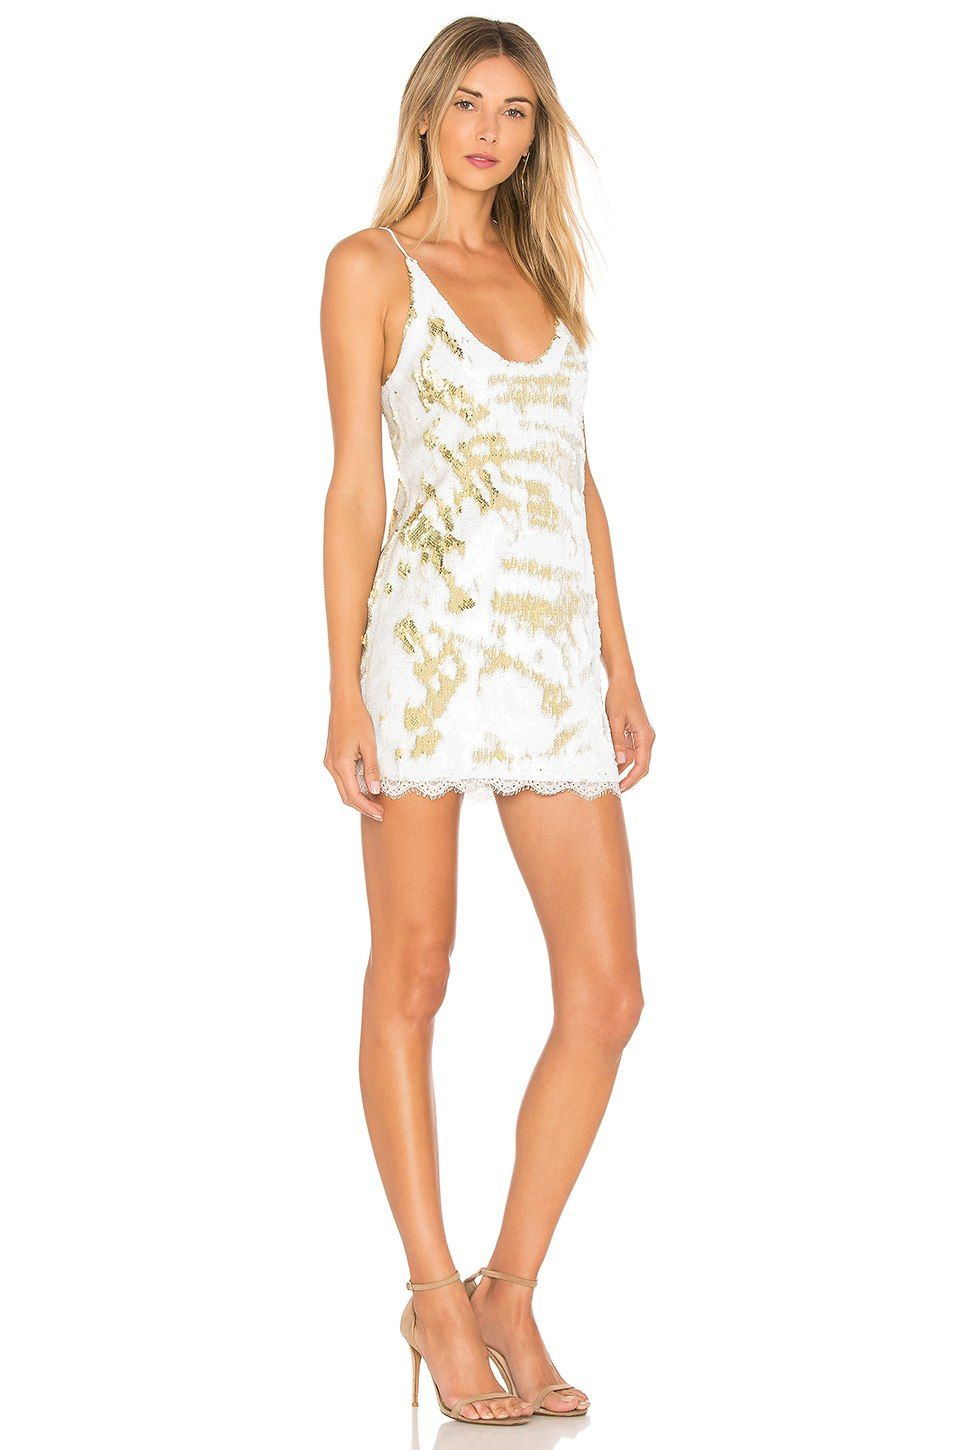 1059a7c6744 Free People Seeing Double Sequin Slip Dress in Ivory